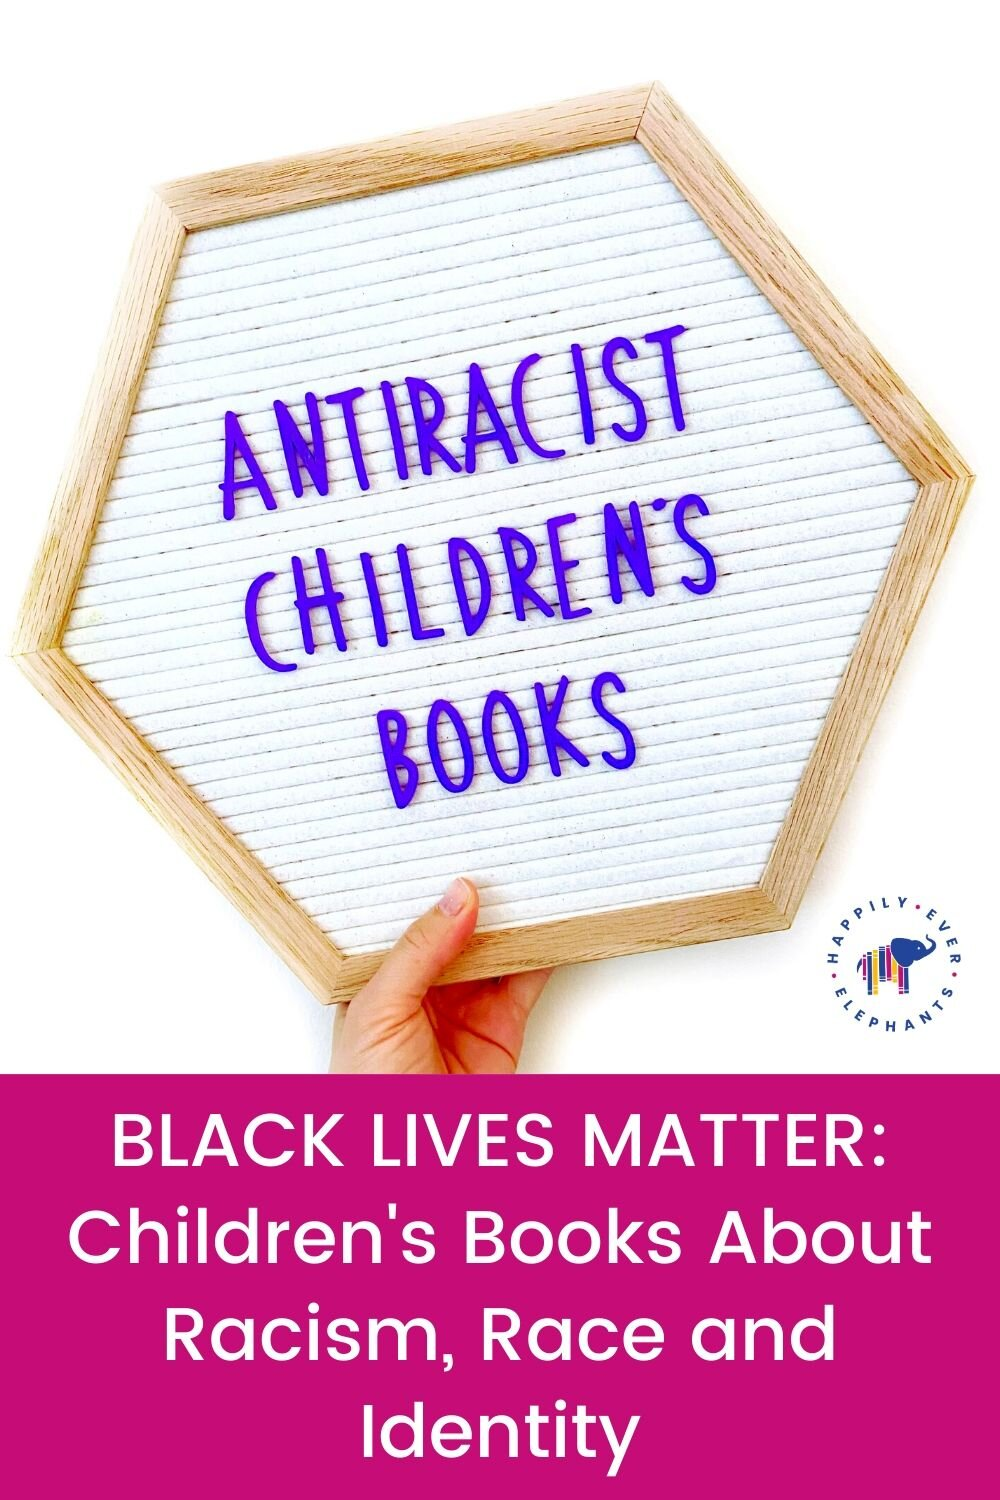 Children's Books About Racism, Race and Identity